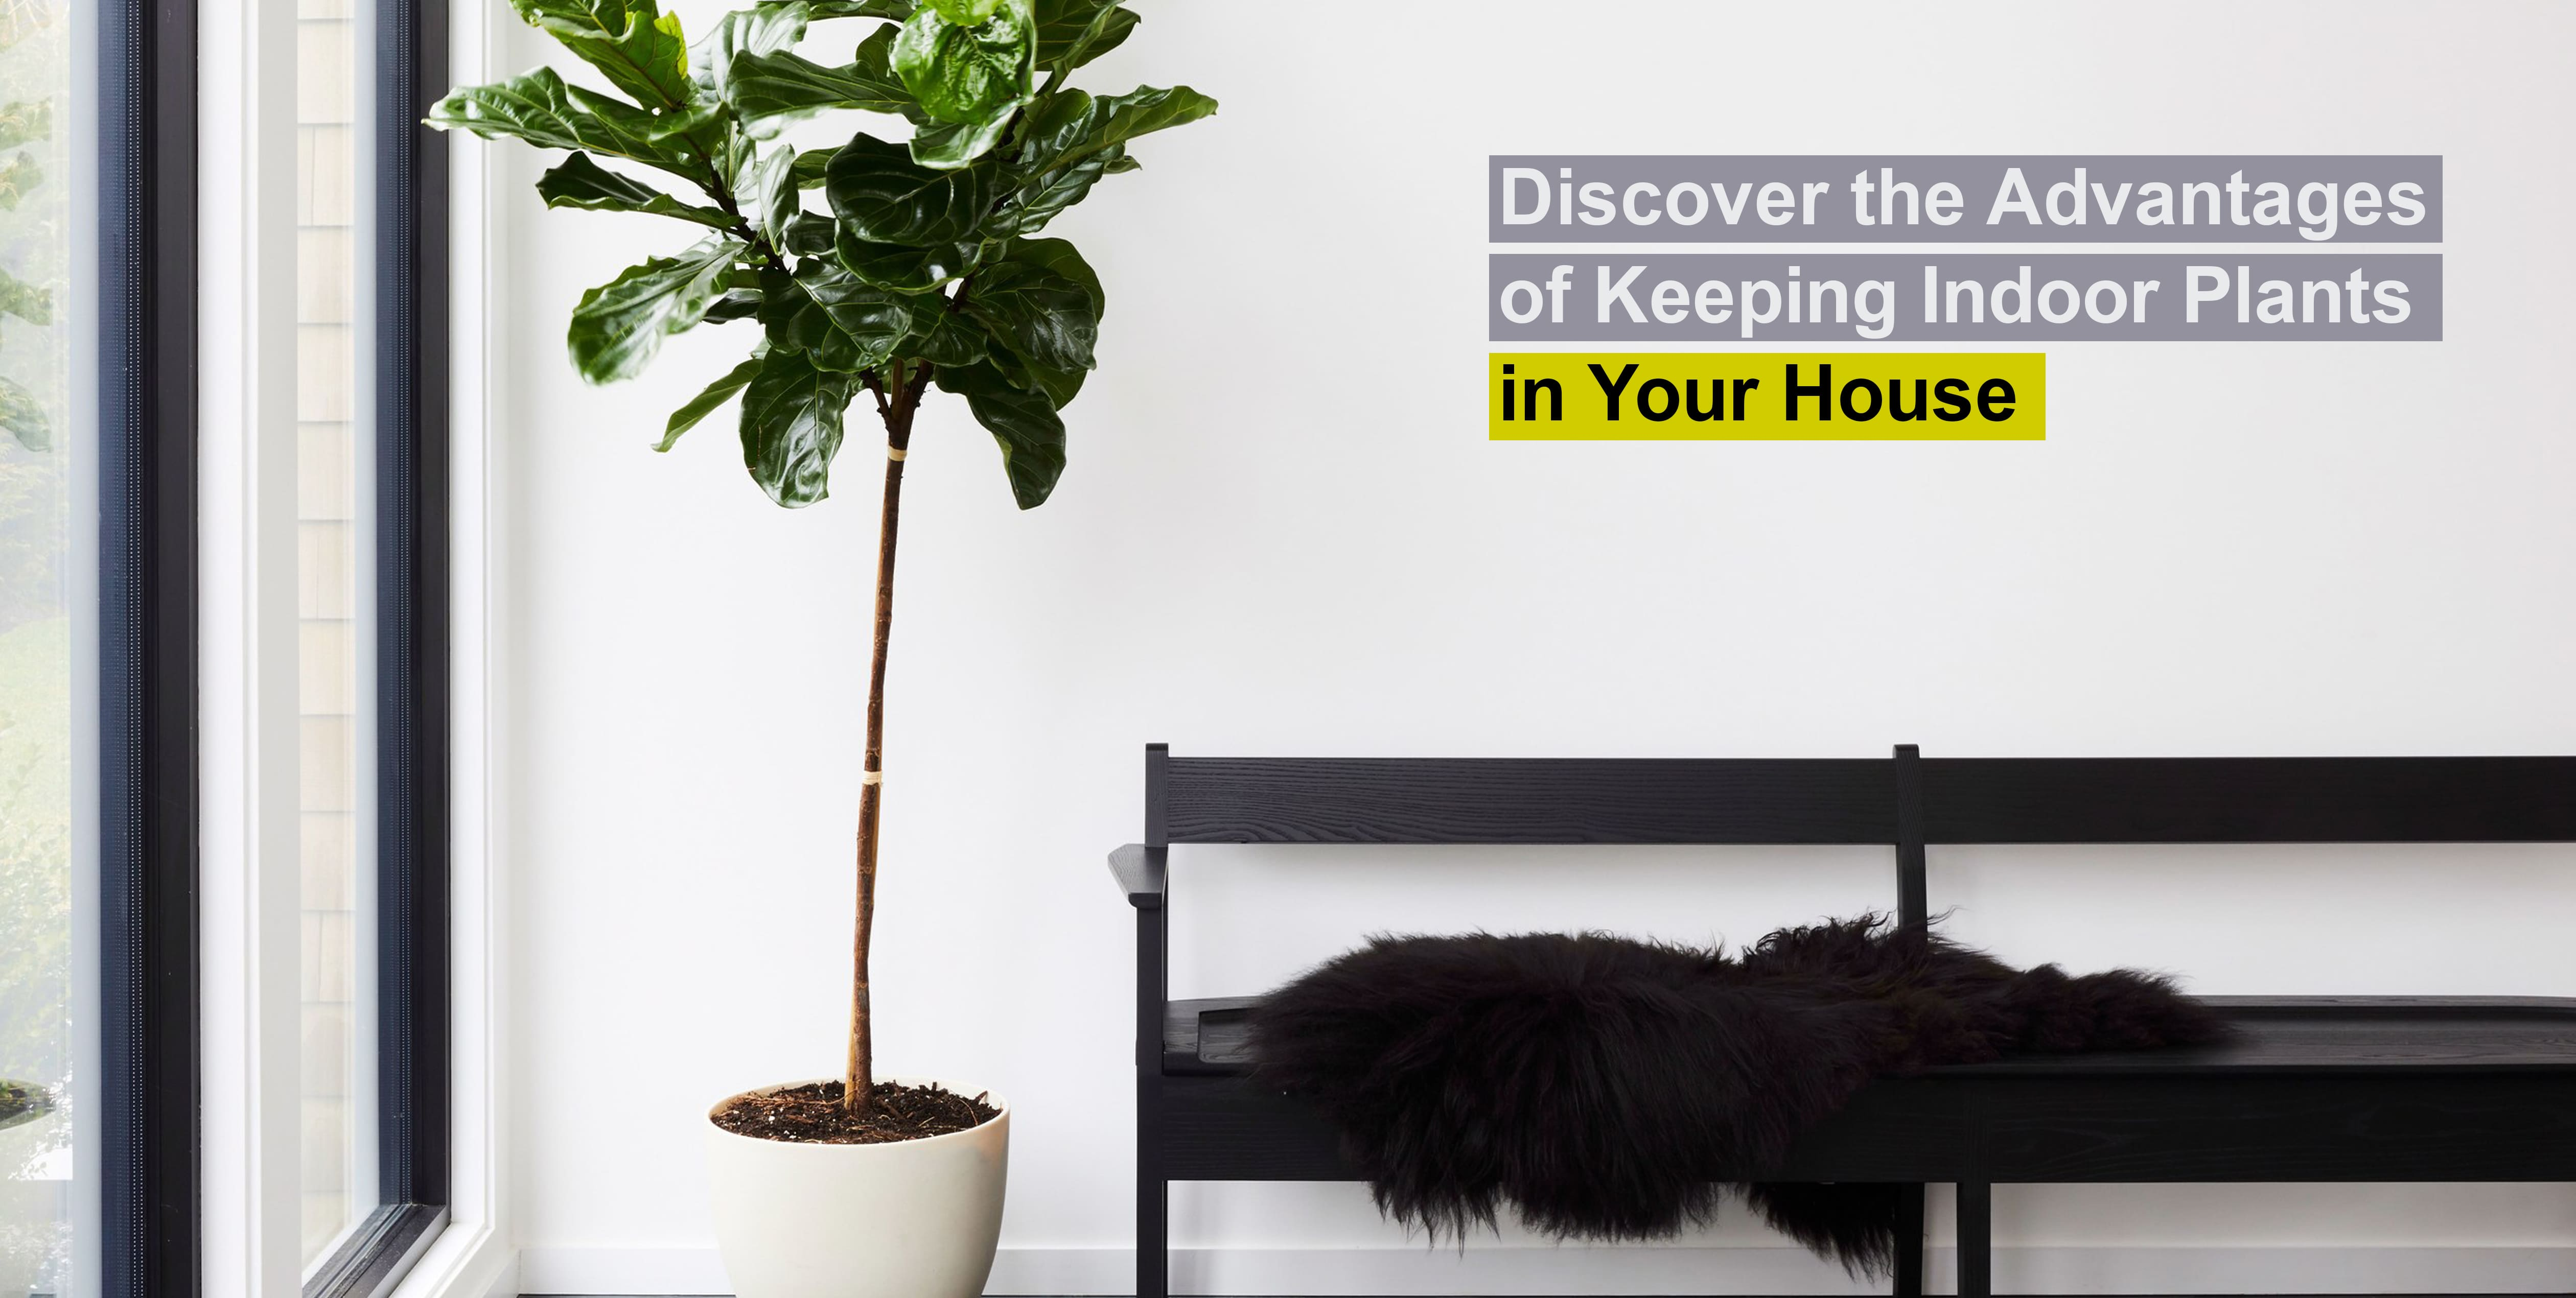 Discover the Advantages of Keeping Indoor Plants in Your House